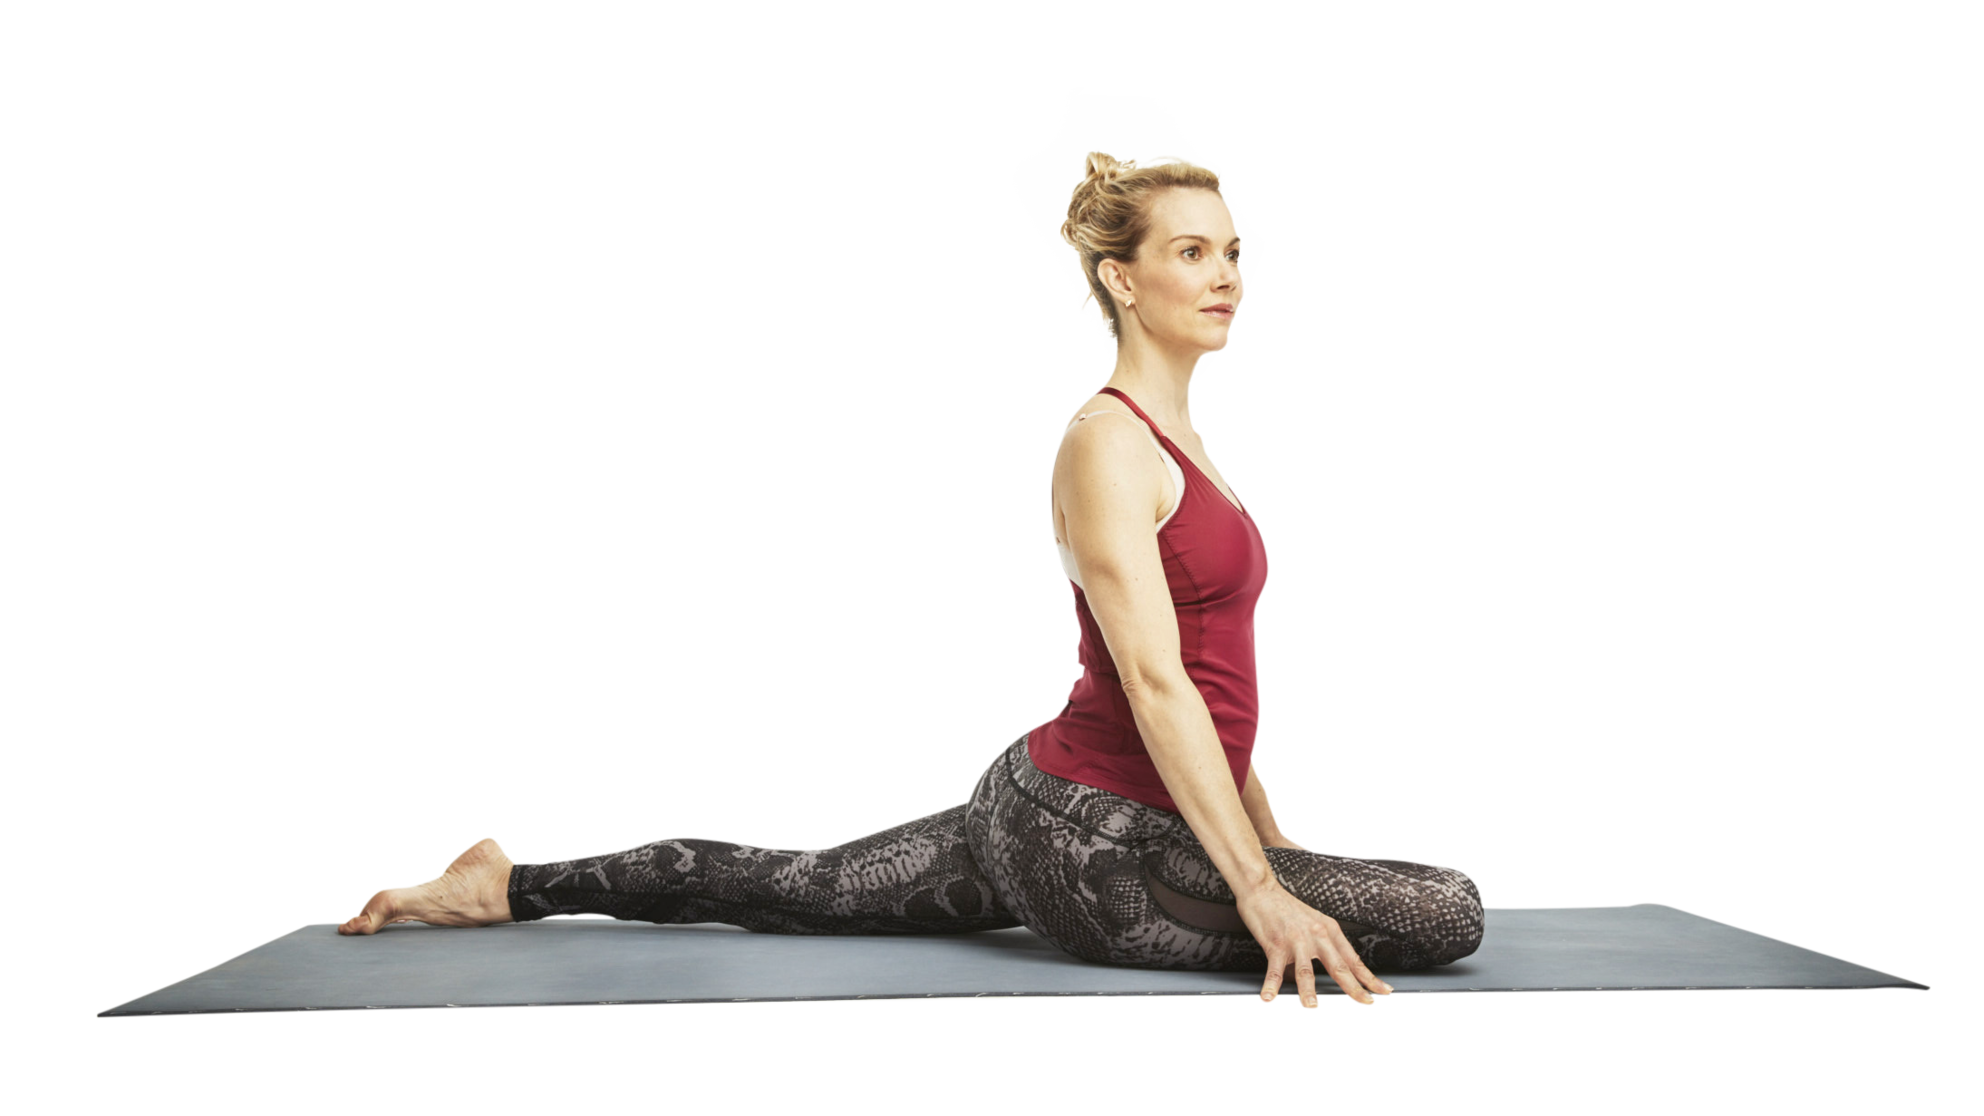 yoga hip opener stretch woman exercise relax health elasticity strength bones women health-magazine